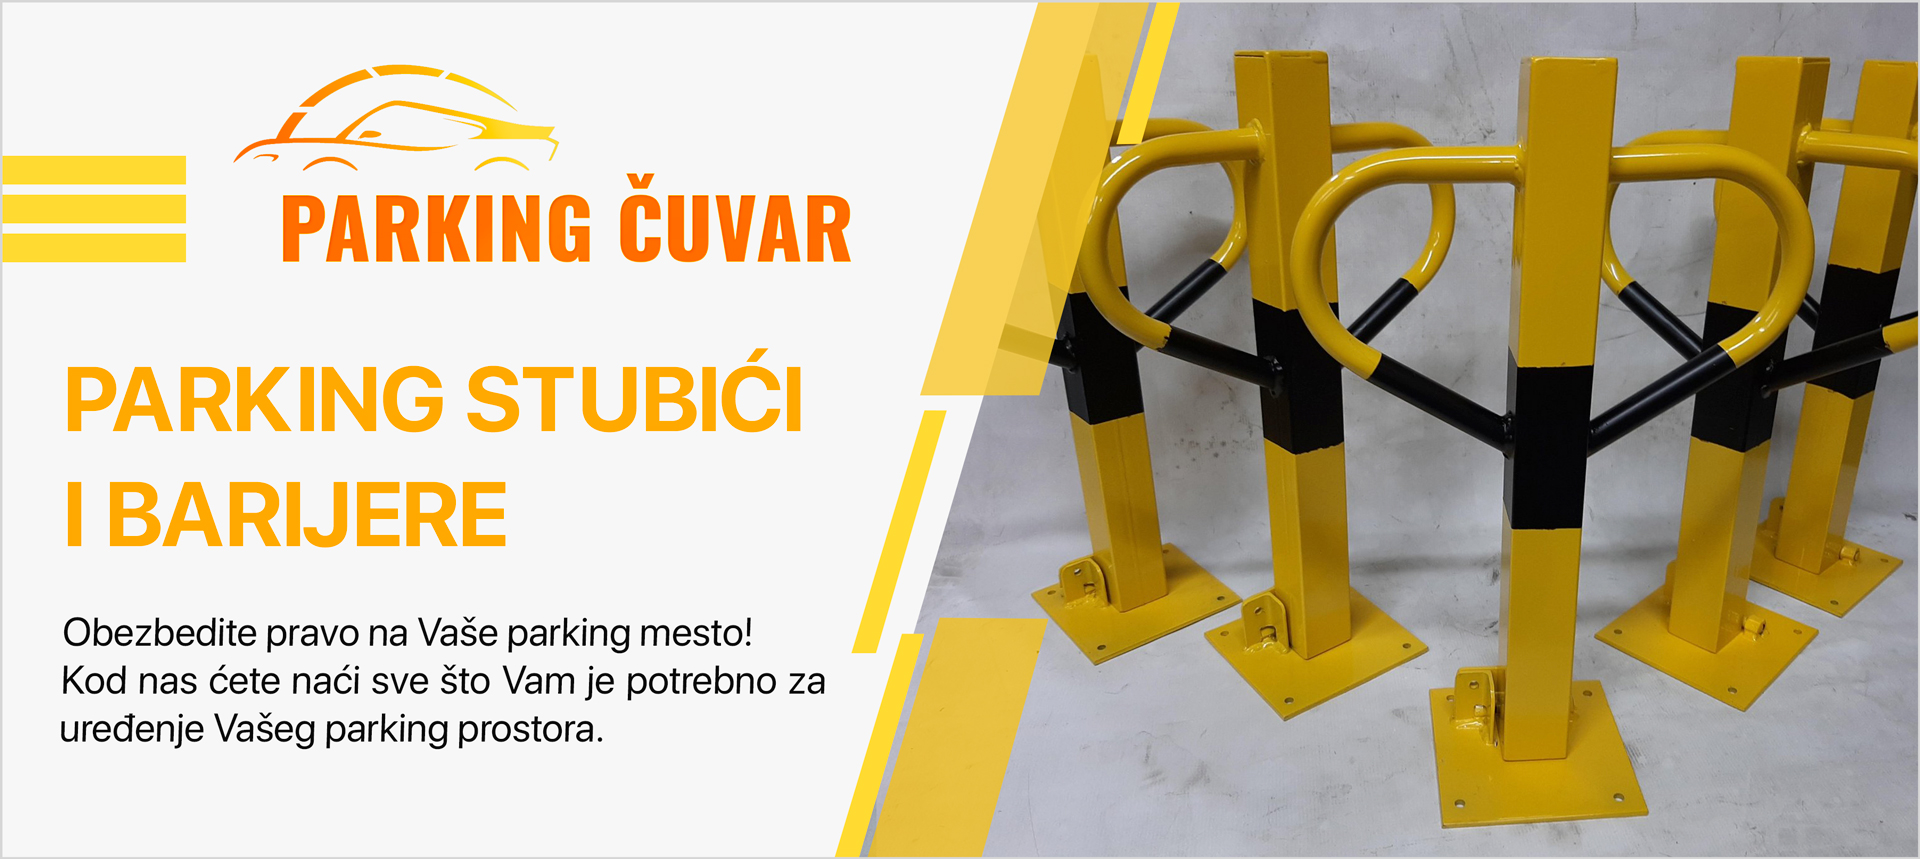 Parking Stubici I Barijere